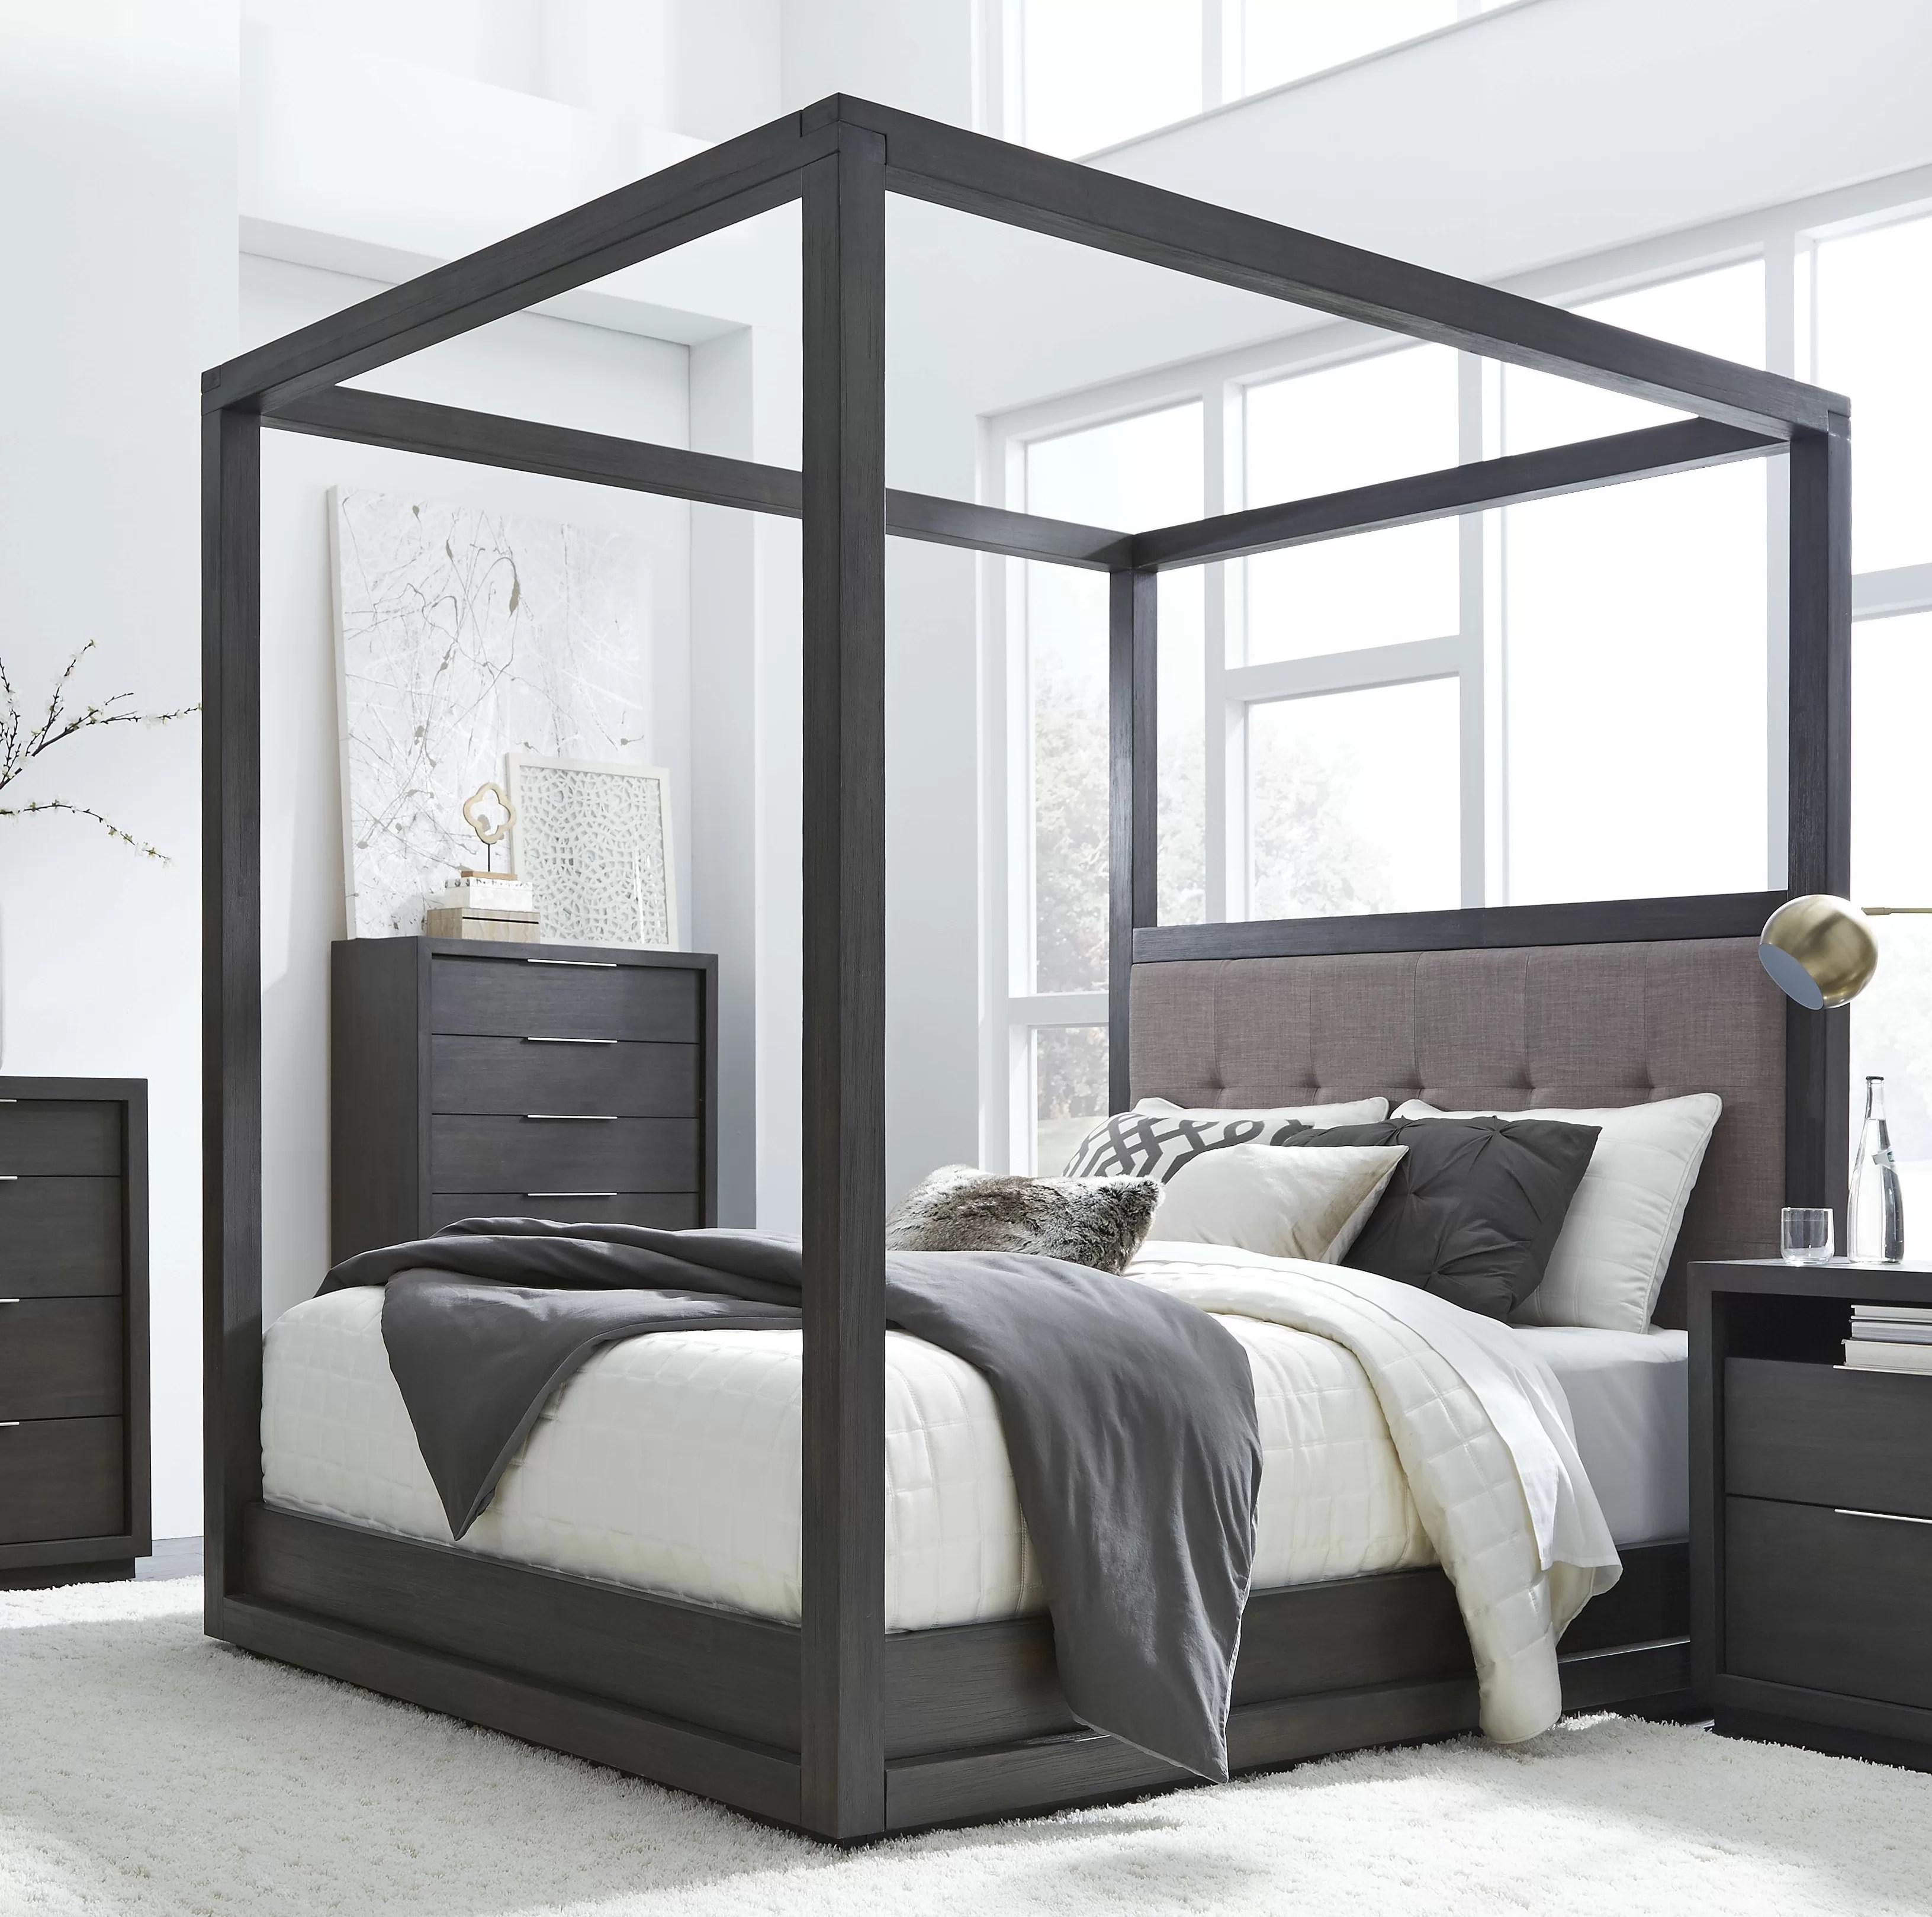 Tufted Solid Wood And Upholstered Low Profile Canopy Bed Reviews